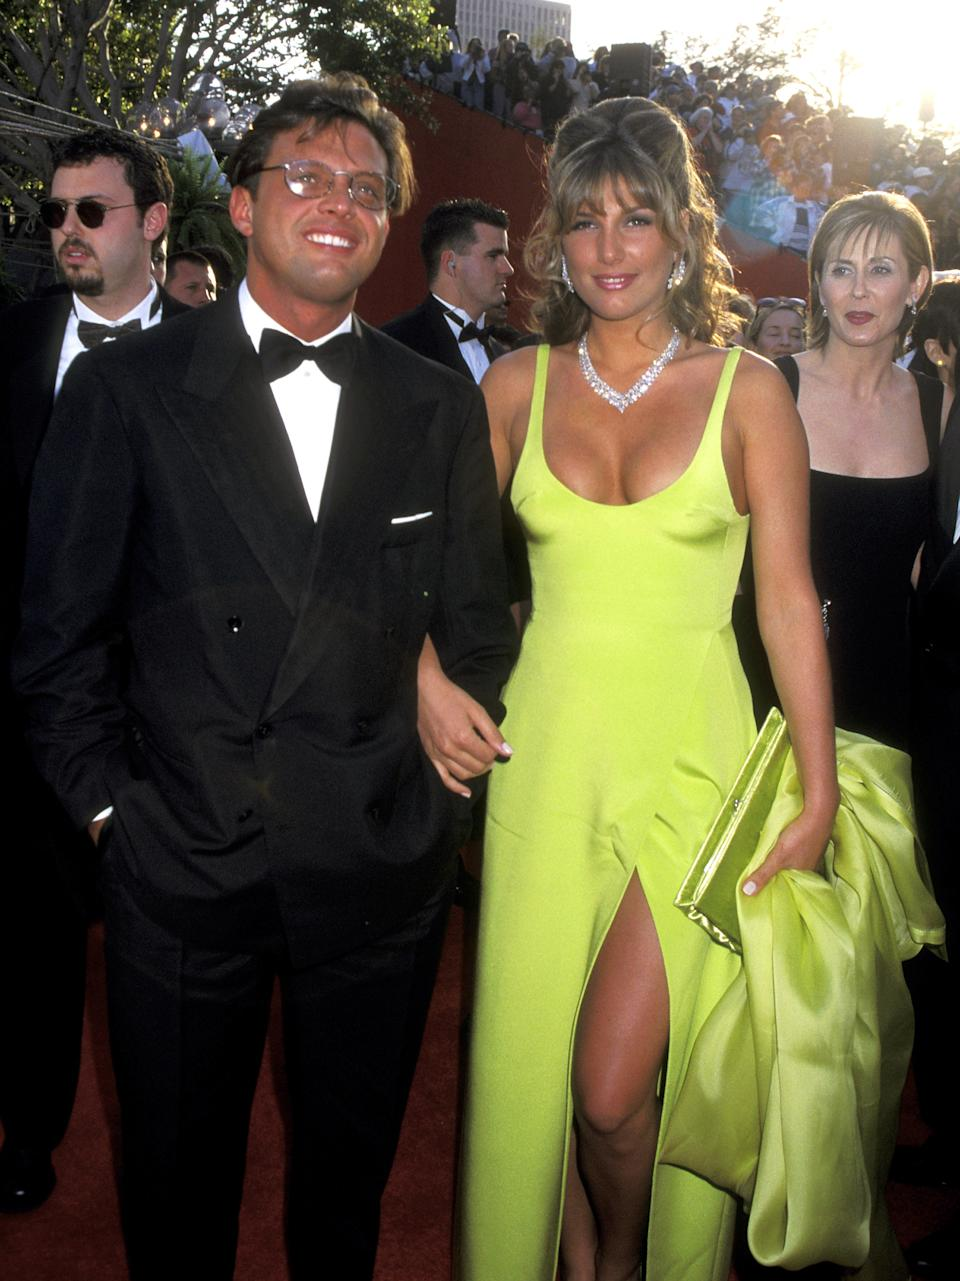 LOS ANGELES - MARCH 25:  Latin Singer Luis Miguel and Actress Daisy Fuentes attend the 68th Annual Academy Awards on March 25, 1996 at Dorothy Chandler Pavilion in Los Angeles, California. (Photo by Ron Galella, Ltd/Ron Galella Collection via Getty Images)